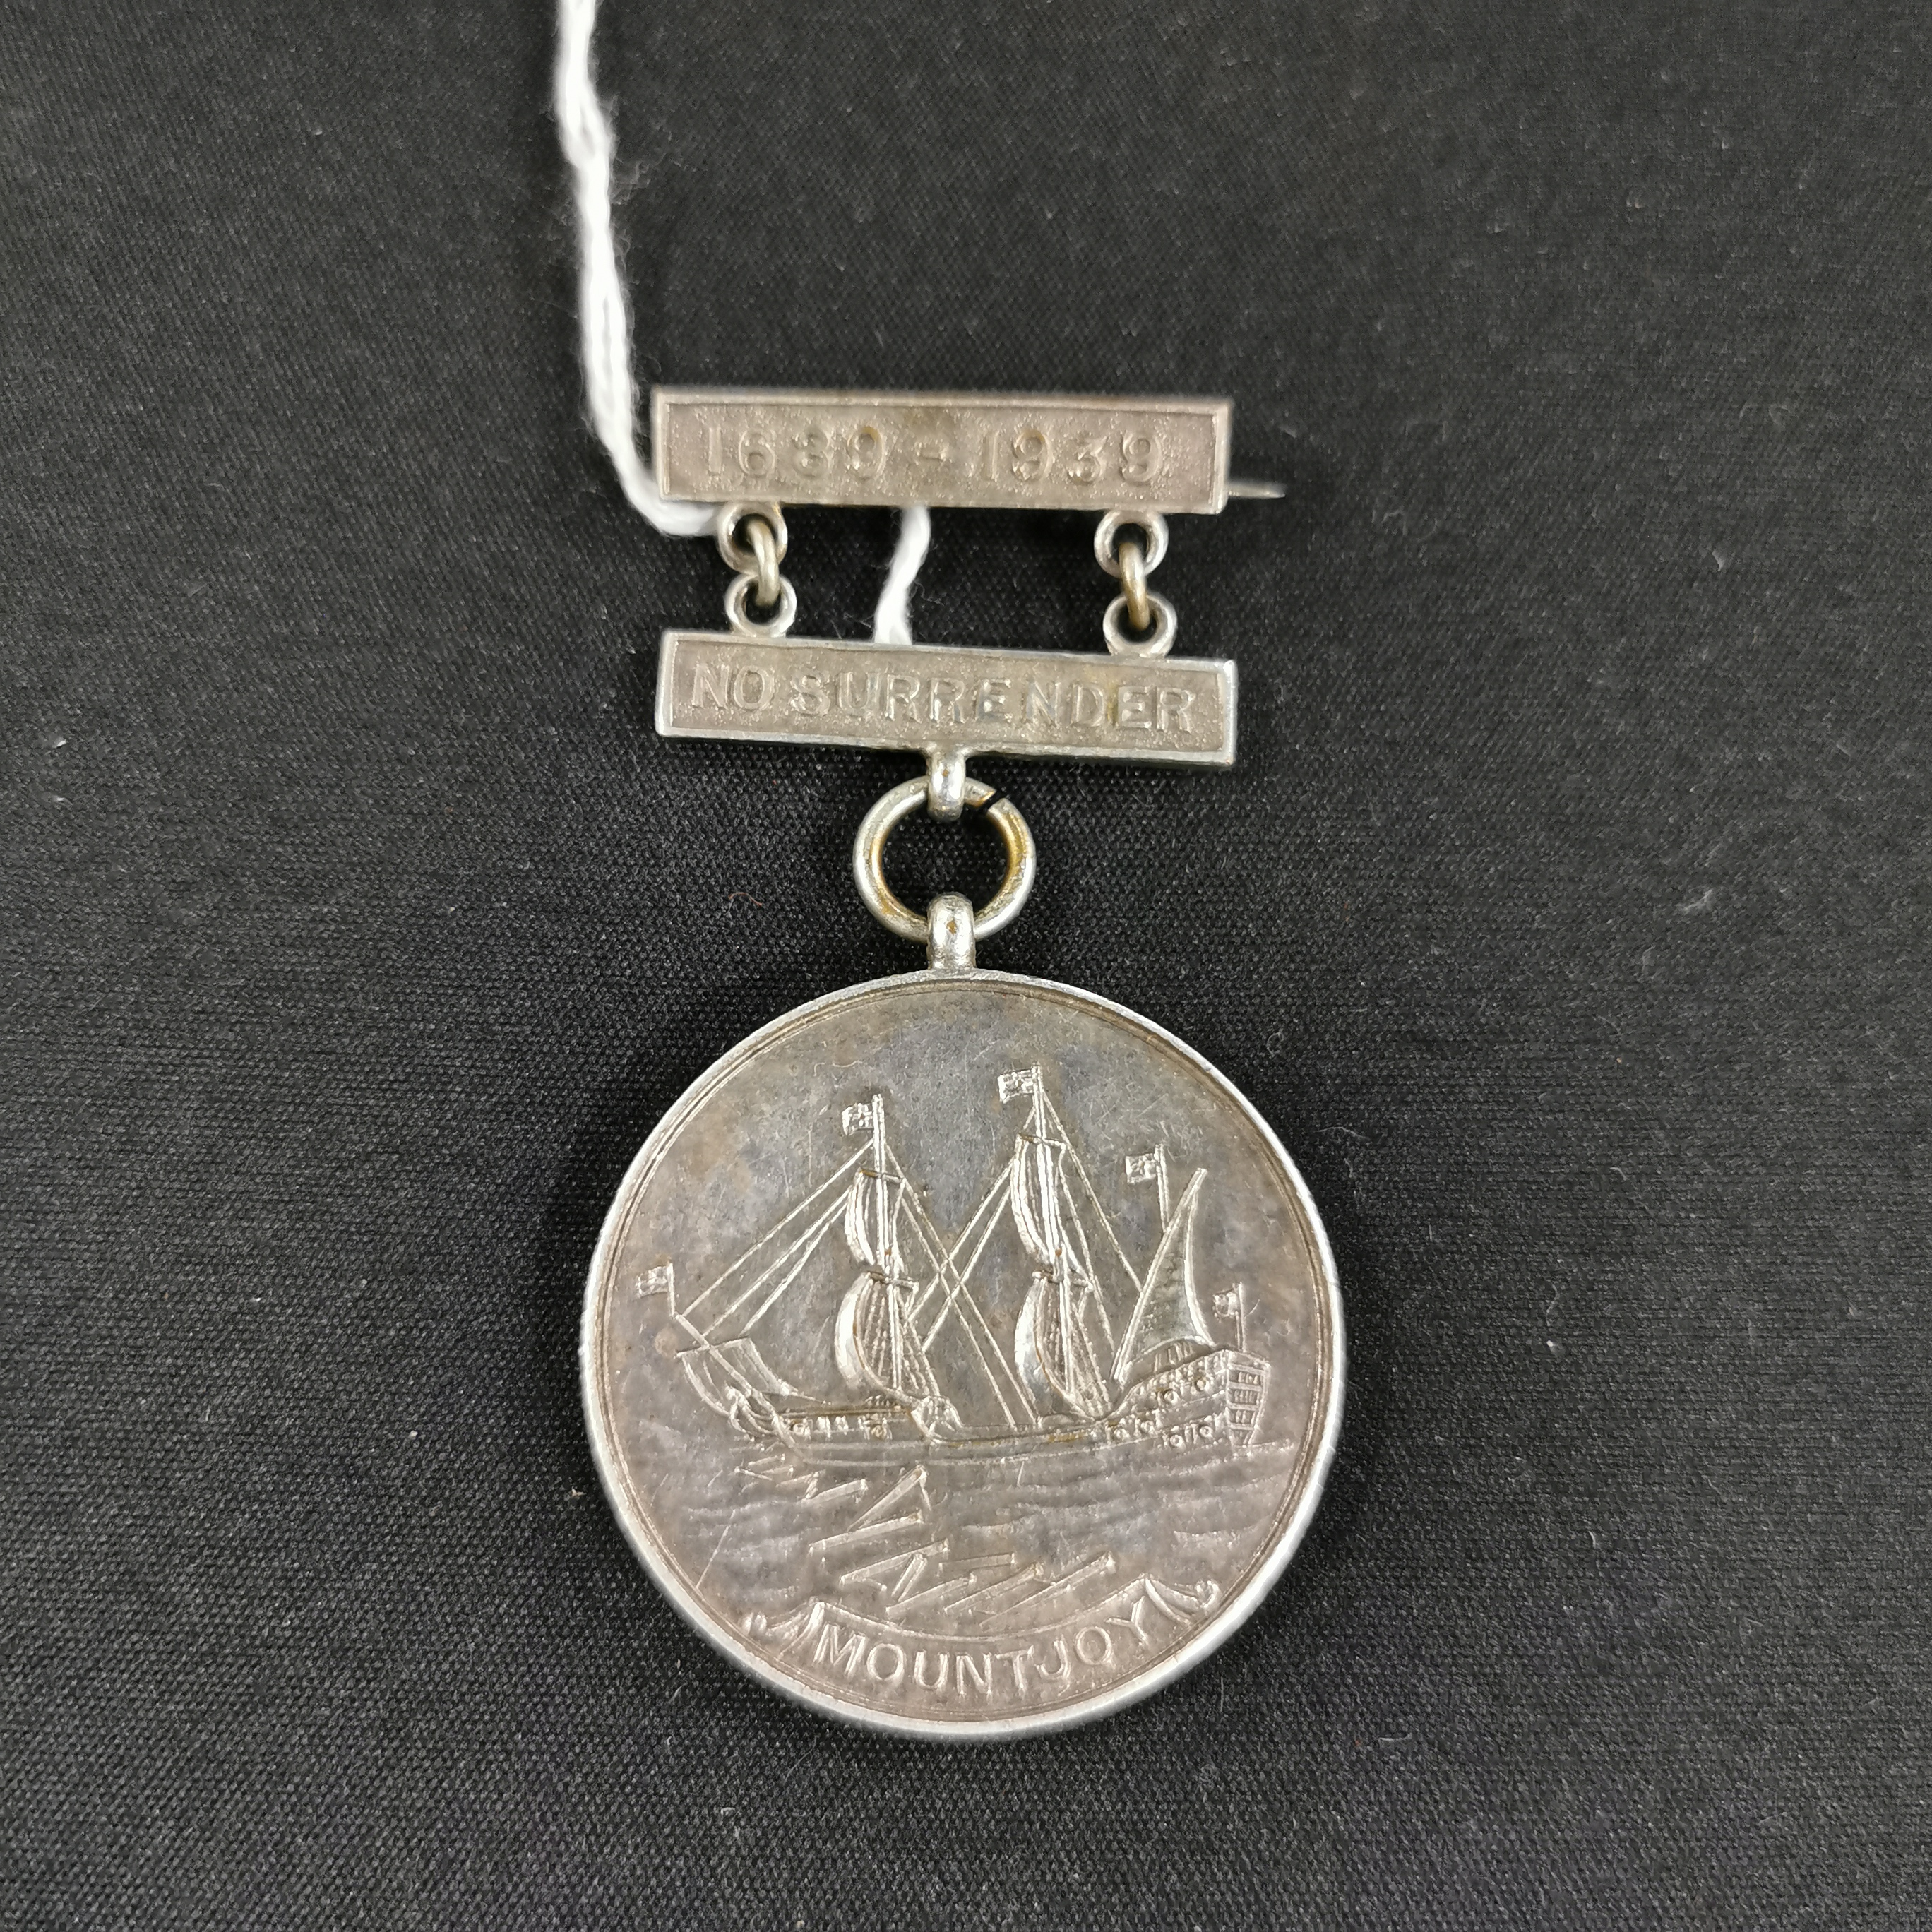 Lot 52 - RELIEF OF DERRY MEDAL 1939 TYPE